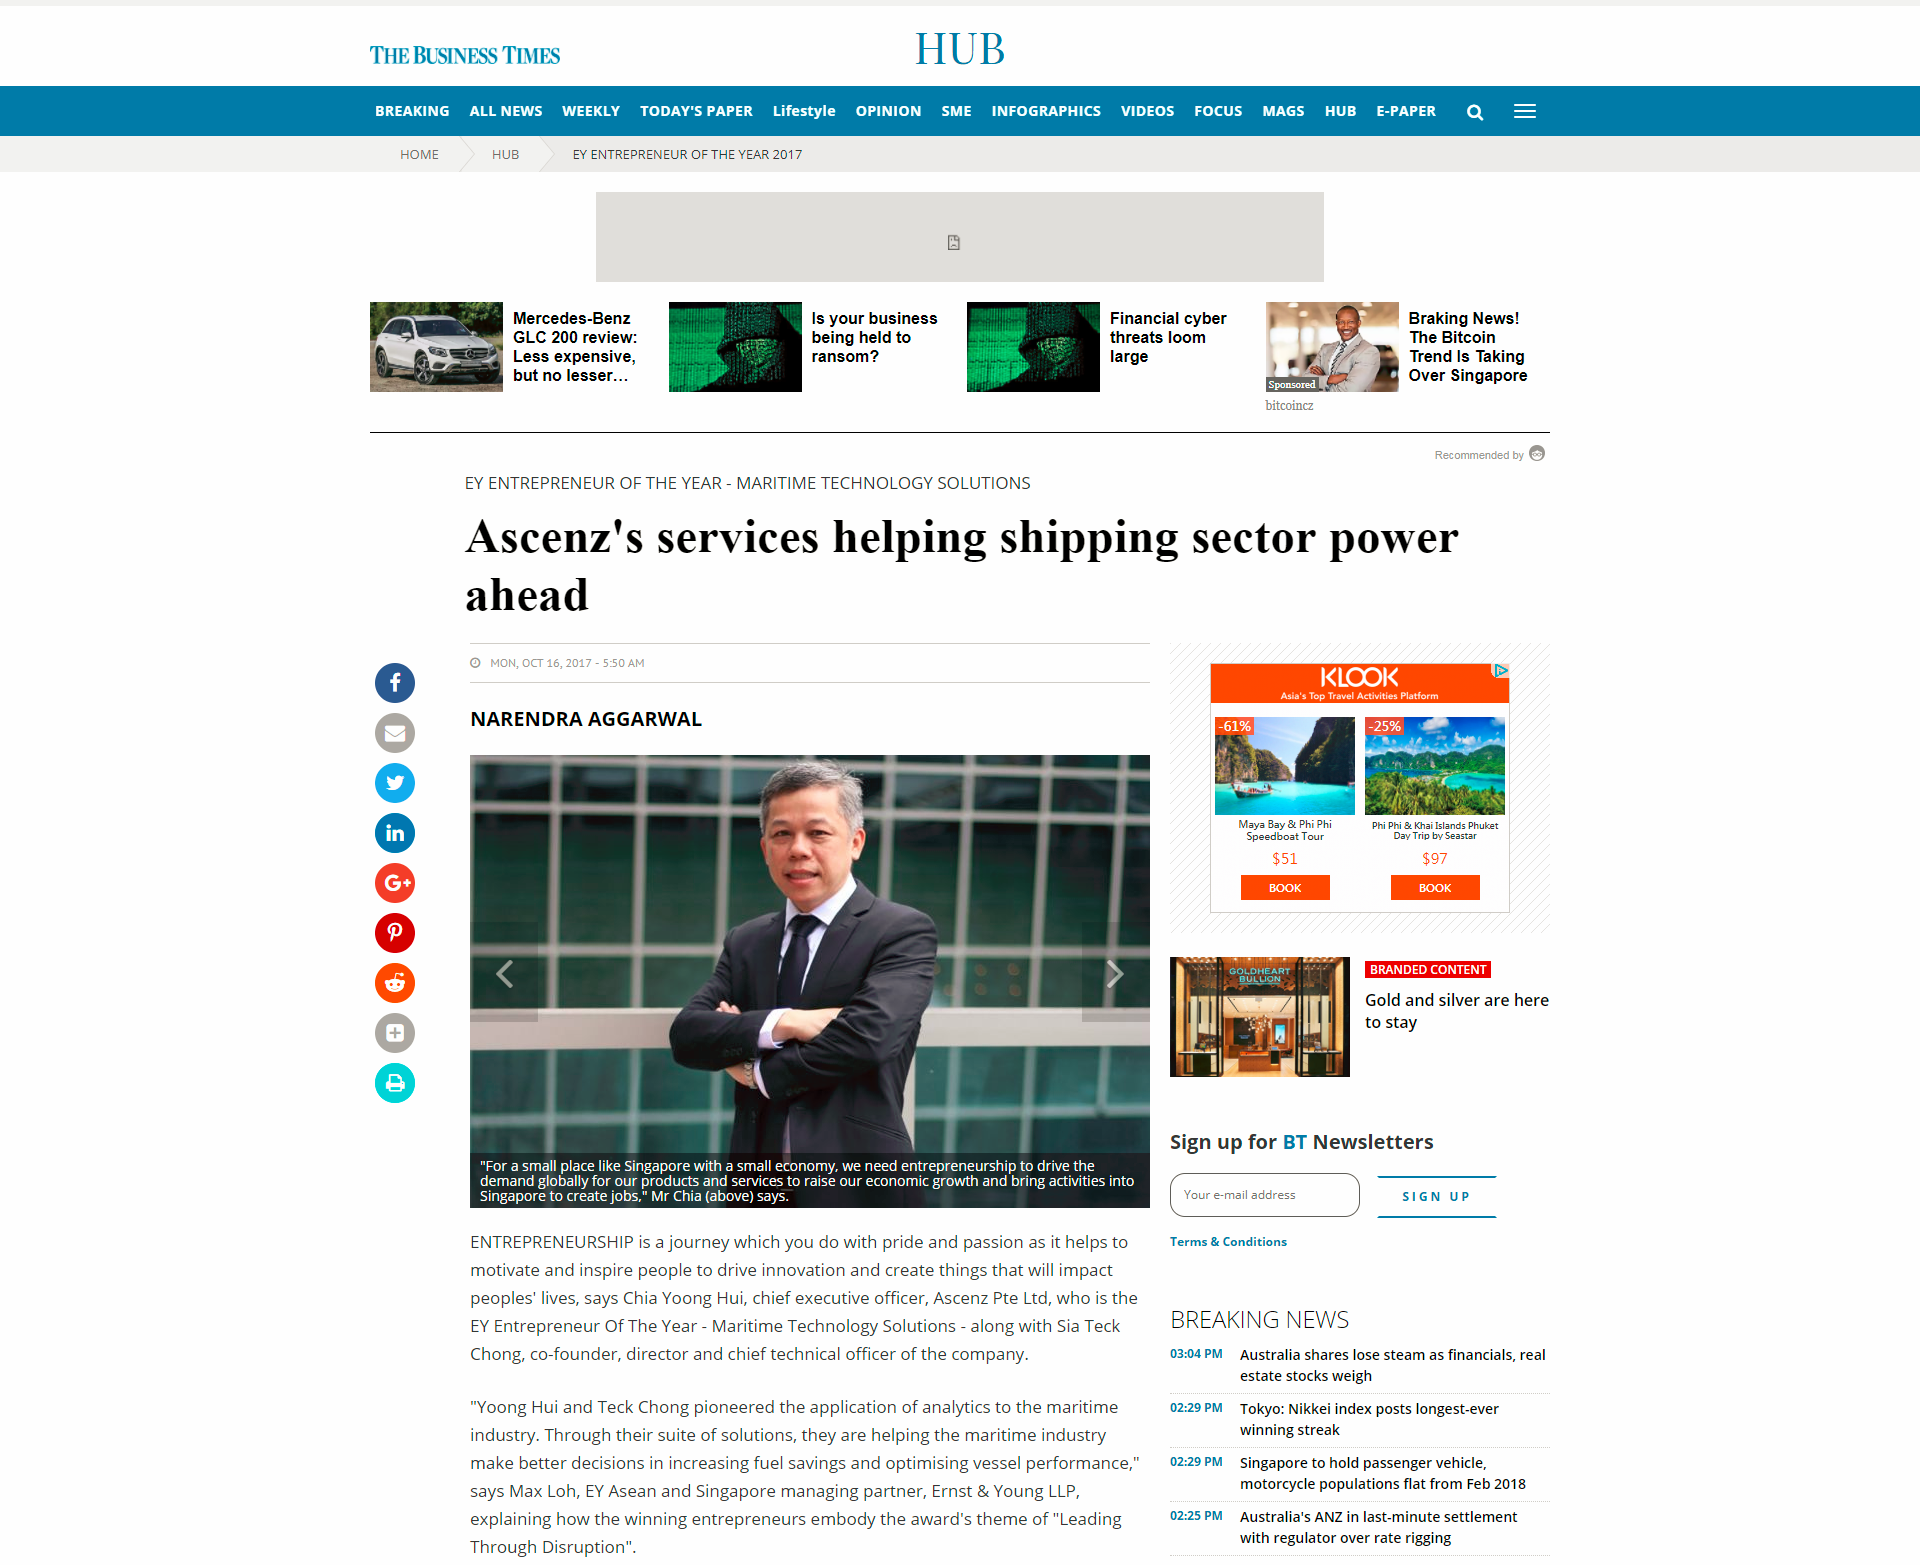 The Business Times Online - Ascenz's services helping shipping sector power ahead